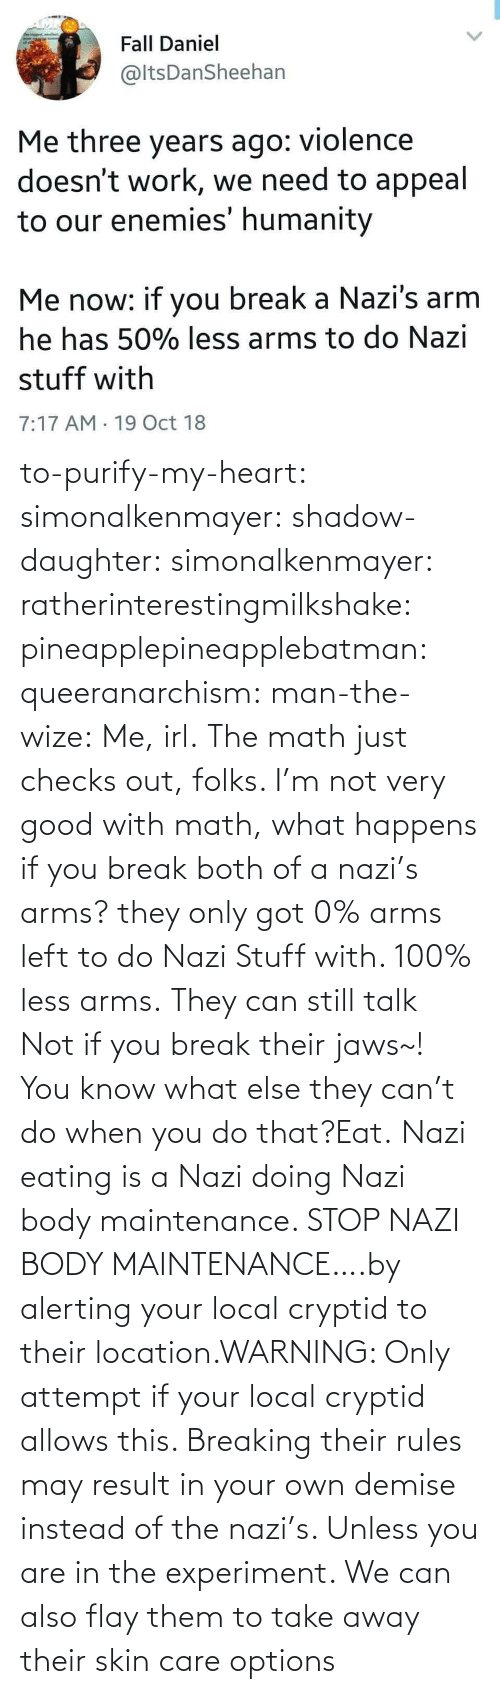 If Your: to-purify-my-heart:  simonalkenmayer:  shadow-daughter: simonalkenmayer:  ratherinterestingmilkshake:  pineapplepineapplebatman:  queeranarchism:  man-the-wize: Me, irl. The math just checks out, folks.     I'm not very good with math, what happens if you break both of a nazi's arms?  they only got 0% arms left to do Nazi Stuff with. 100% less arms.  They can still talk  Not if you break their jaws~!  You know what else they can't do when you do that?Eat.   Nazi eating is a Nazi doing Nazi body maintenance. STOP NAZI BODY MAINTENANCE….by alerting your local cryptid to their location.WARNING: Only attempt if your local cryptid allows this. Breaking their rules may result in your own demise instead of the nazi's. Unless you are in the experiment.    We can also flay them to take away their skin care options